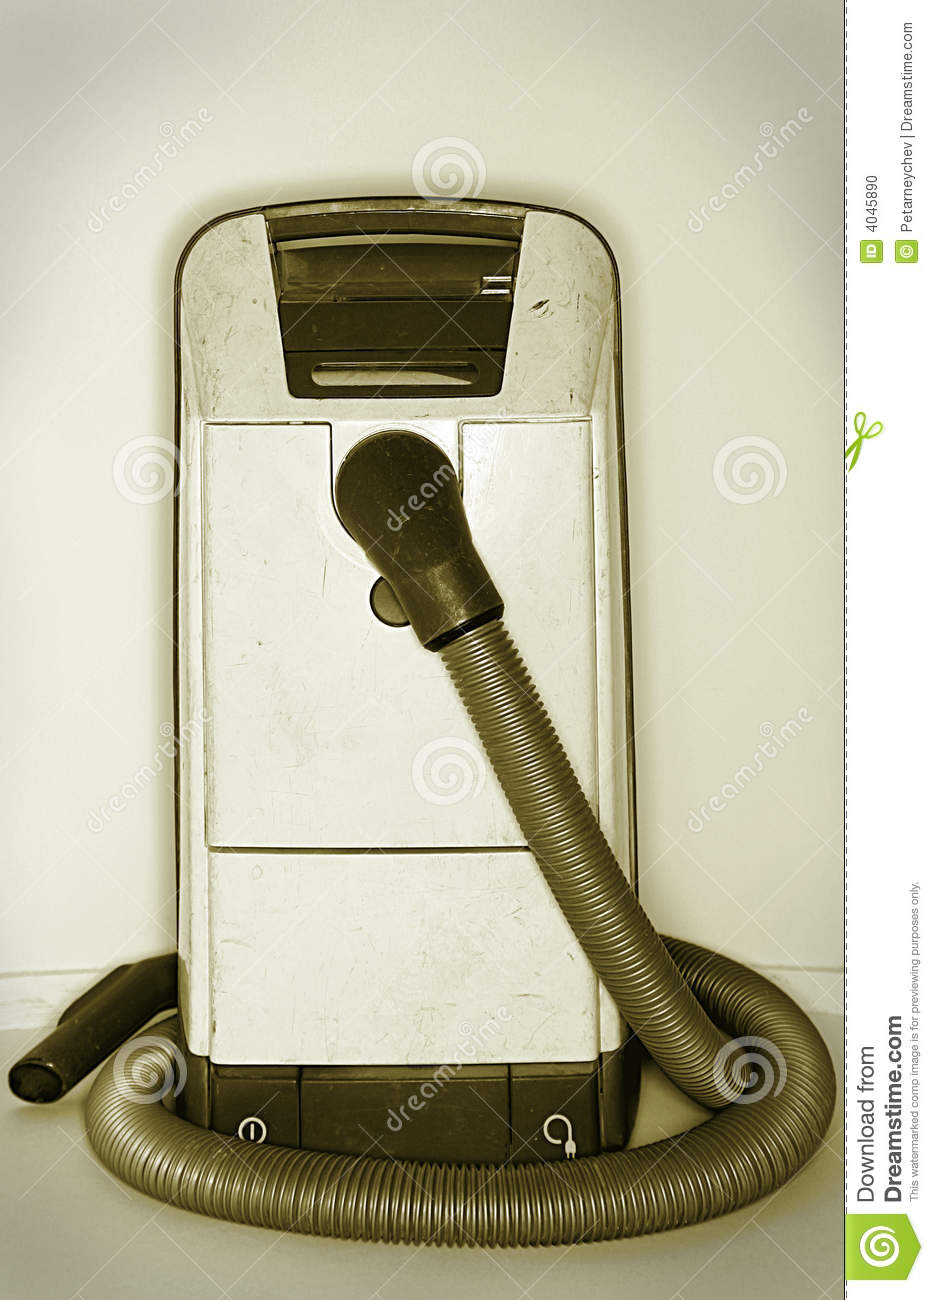 Dirty Old Vacuum Cleaner Stock Photo Image 4045890